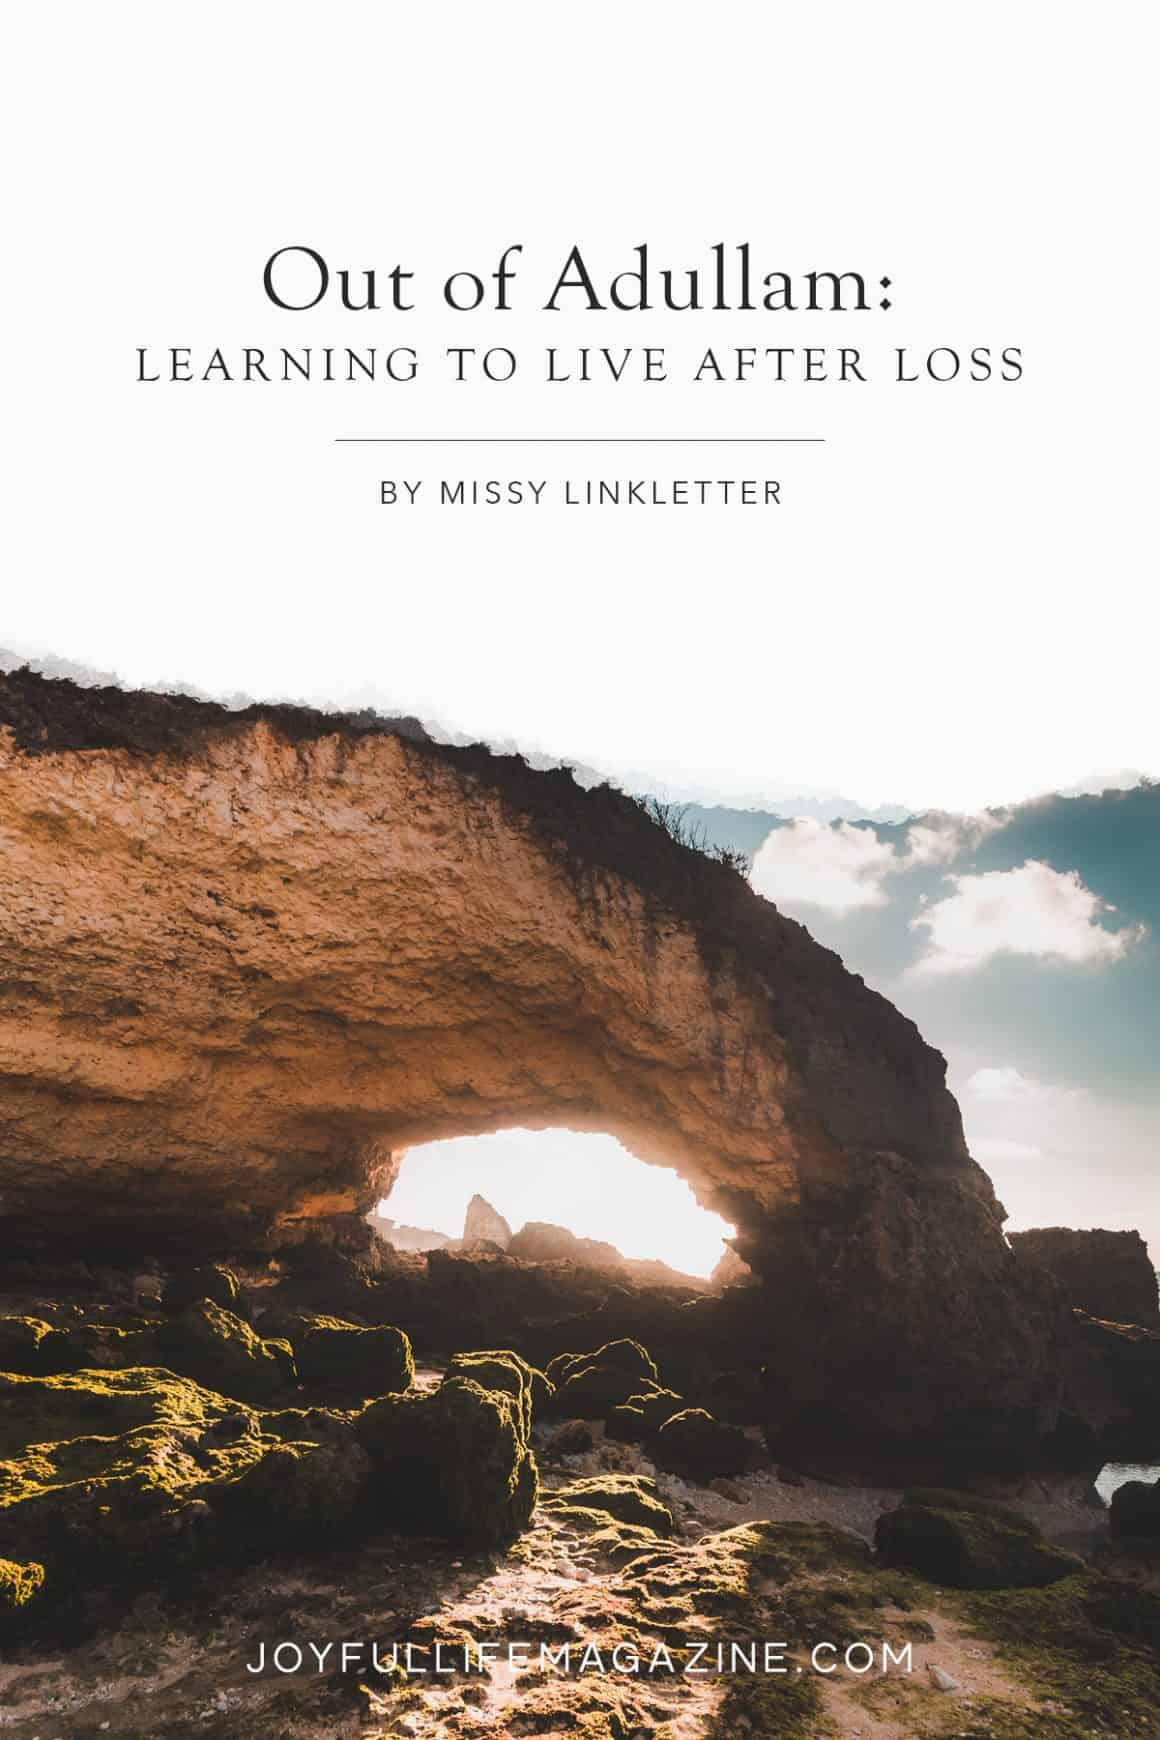 Life after Loss: Emerging from the cave of grief